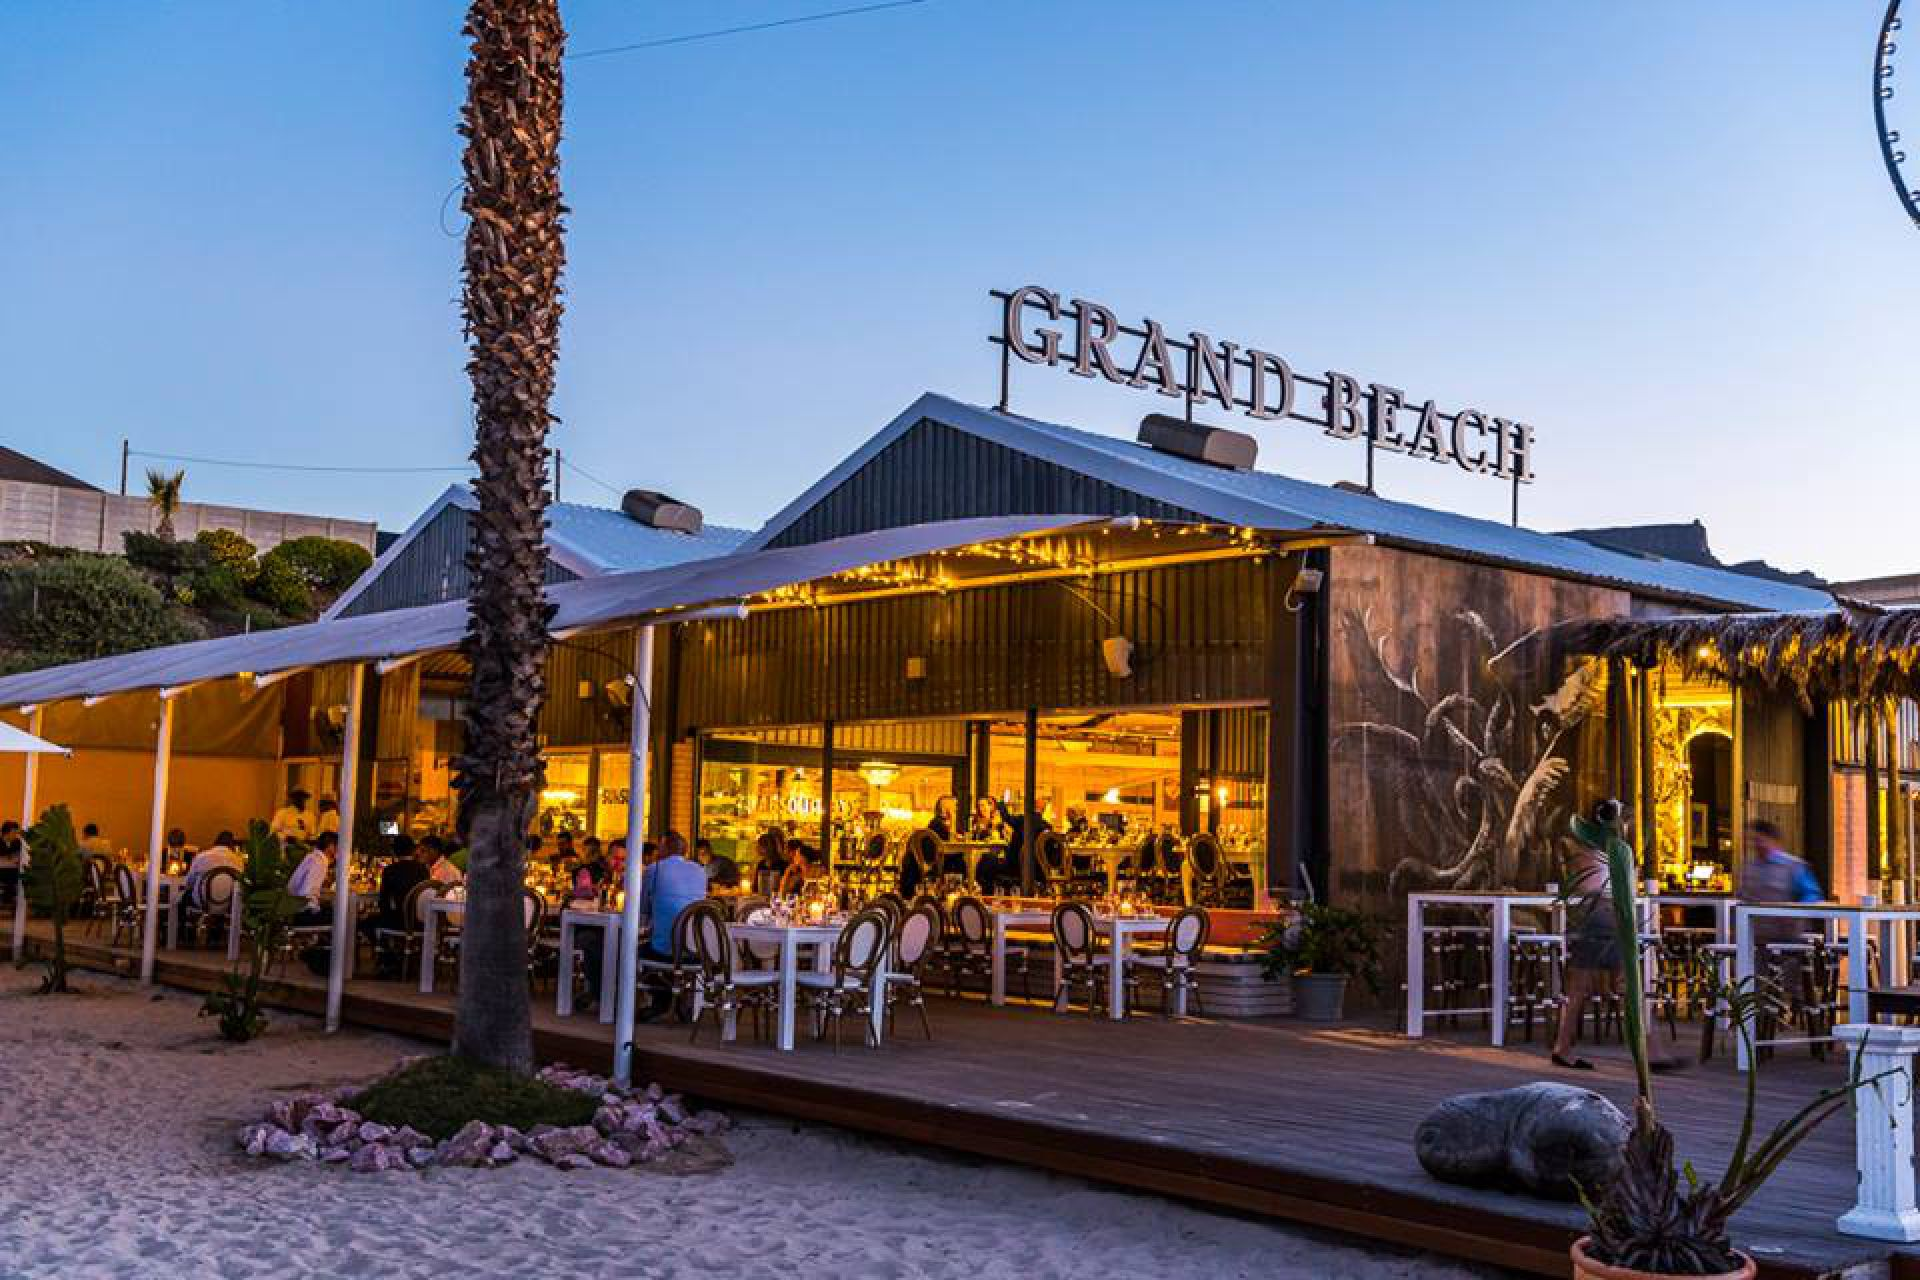 Grand Cafe And Beach Restaurant Cape Town